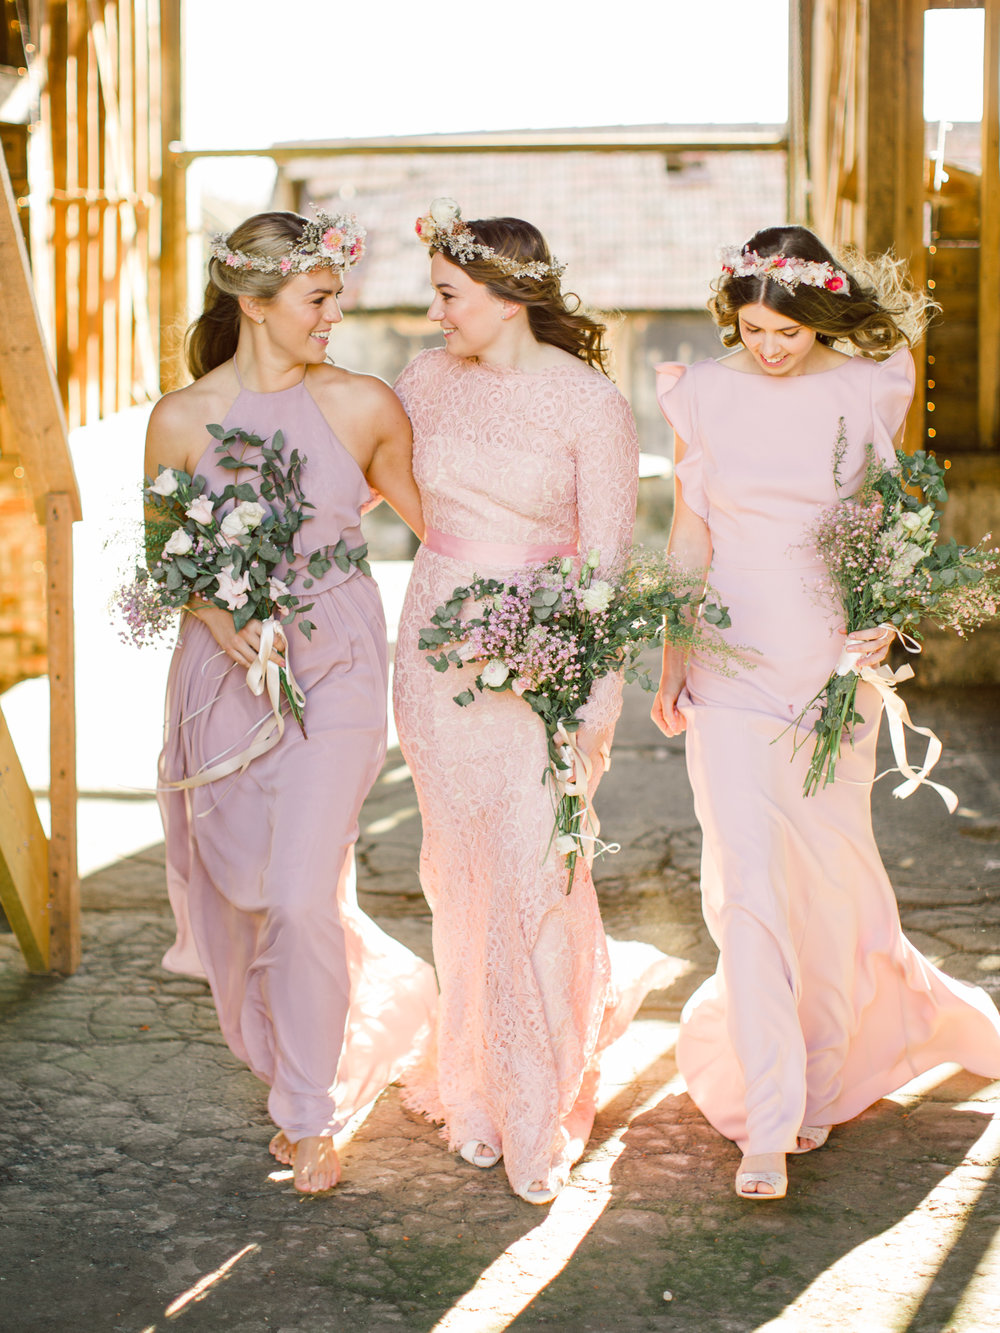 Thth bridesmaids affordable quality and beautiful dresses for dresses for such good quality and fun designs for all sizes they totally got my heart enjoy it because these photos are a deli to your eyes ombrellifo Gallery